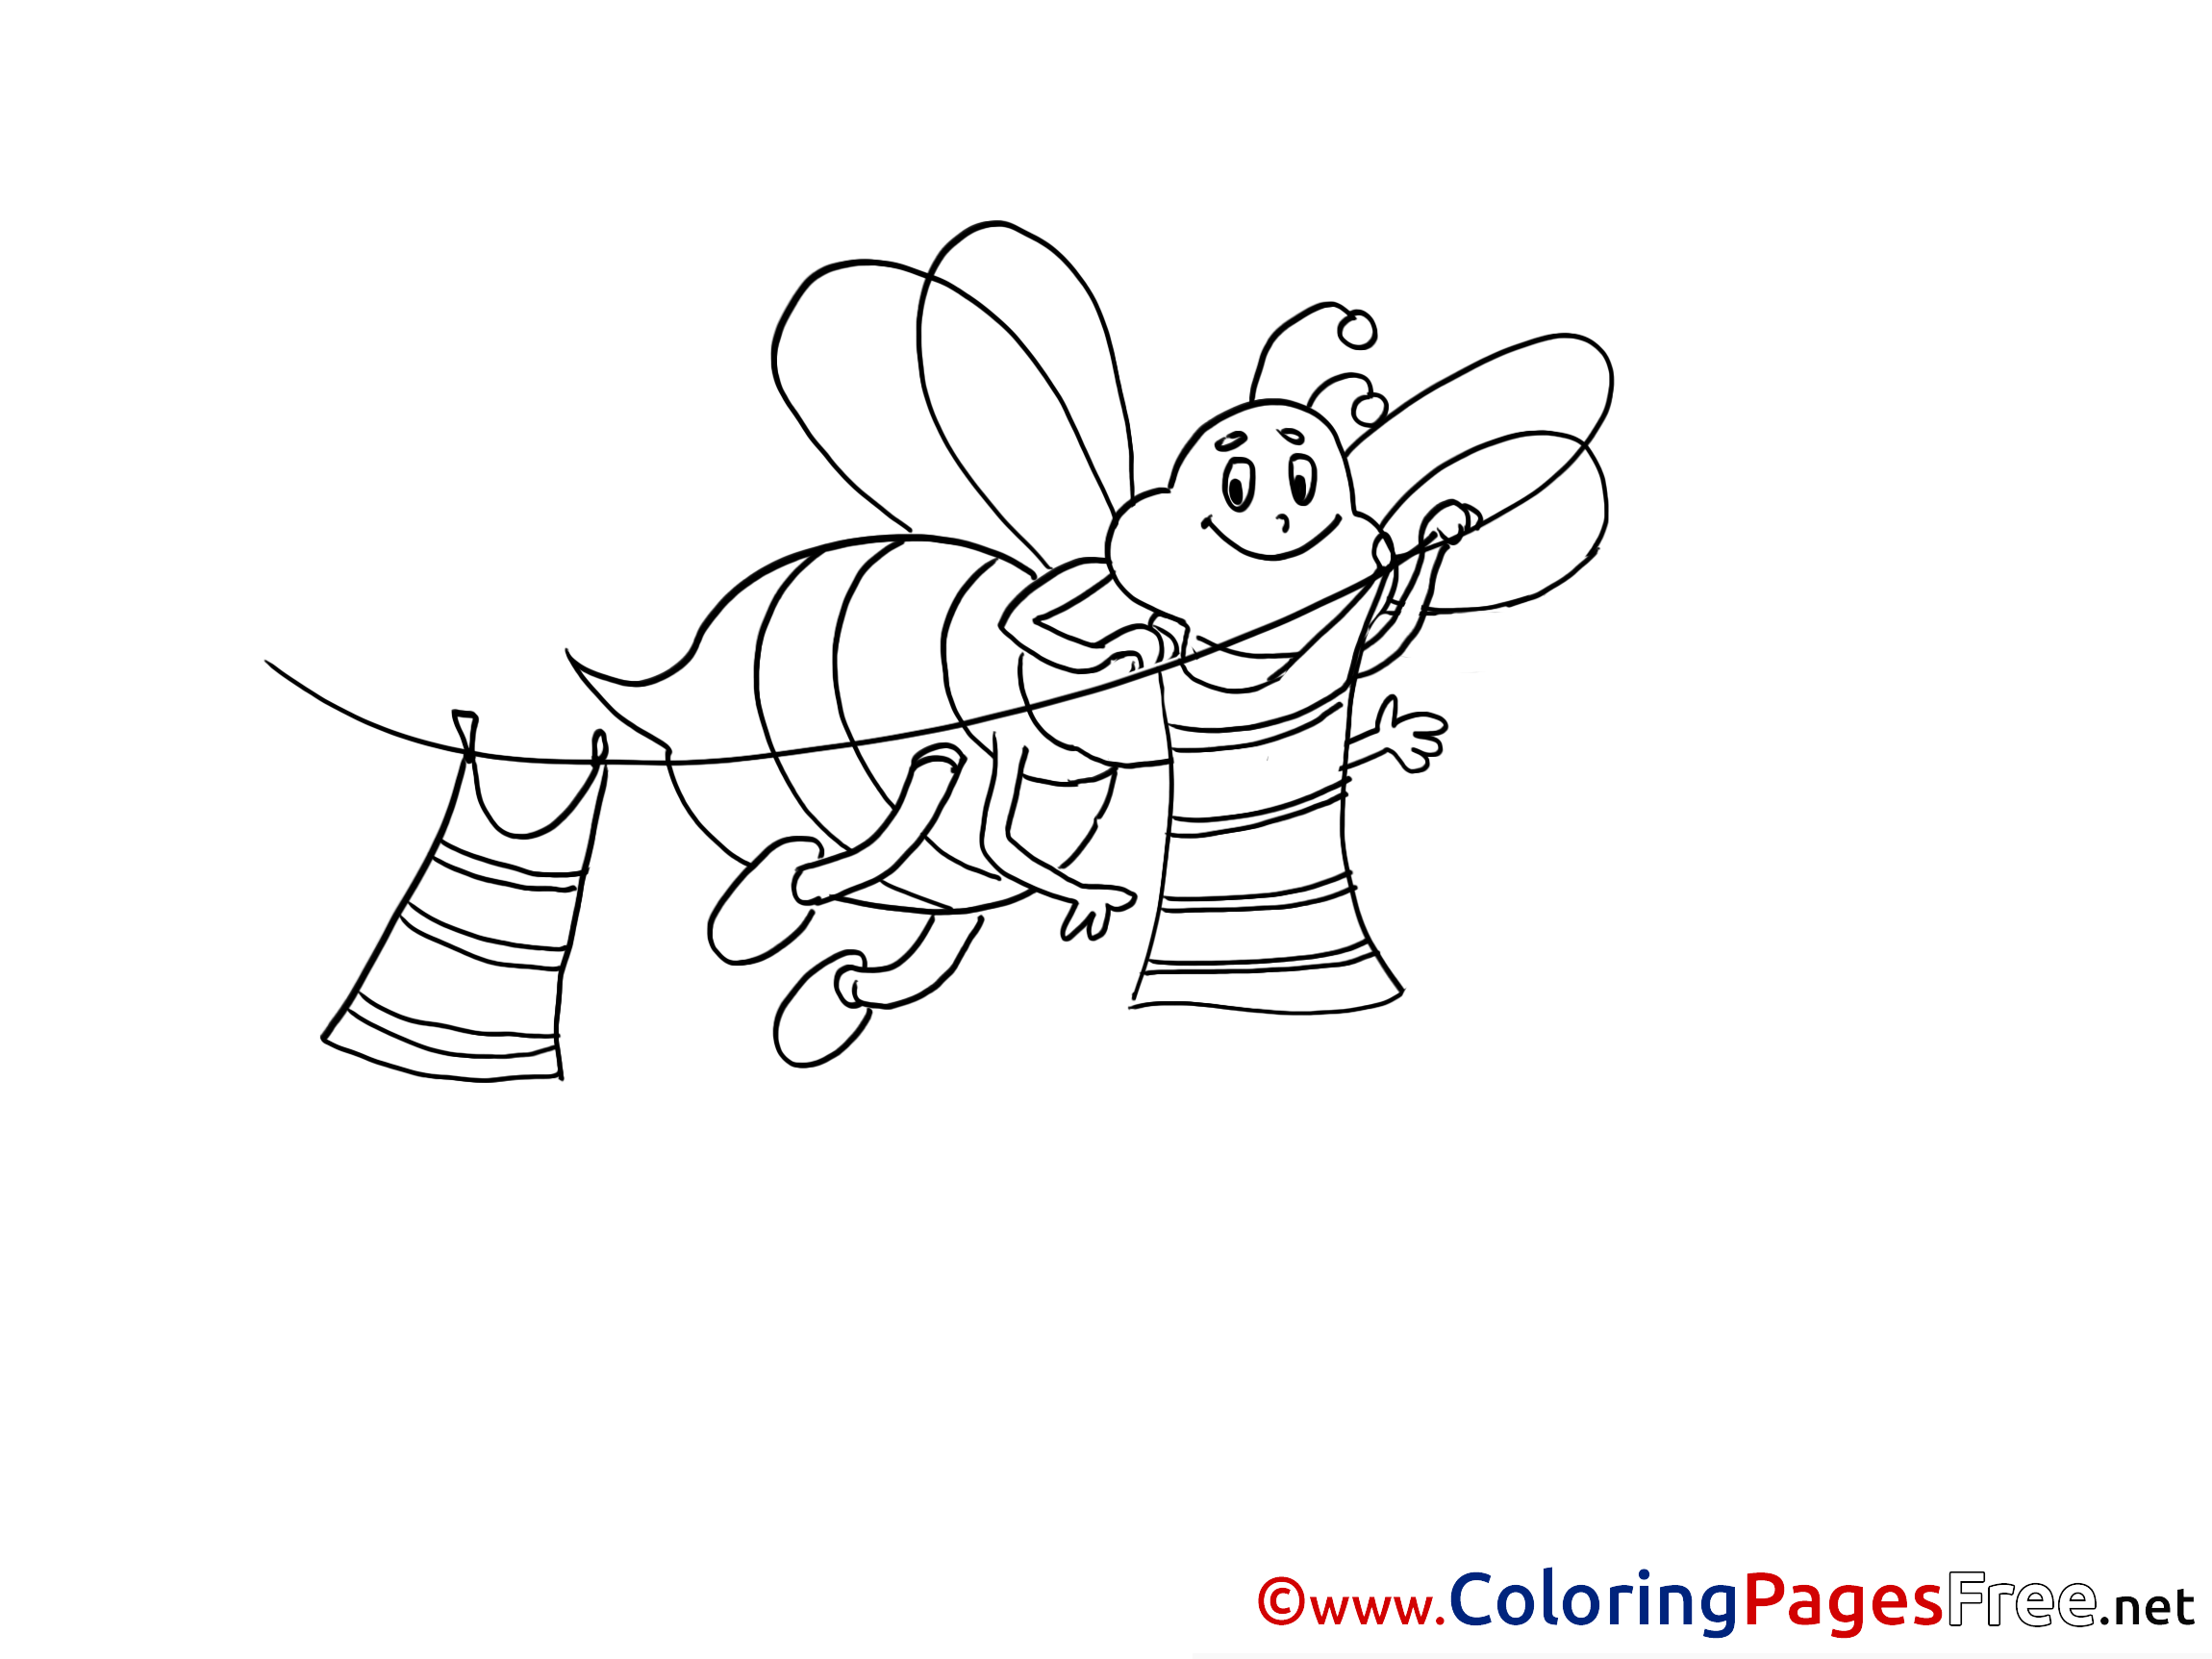 clothes coloring pages for adults activity sheets, colouring ... | 1725x2300